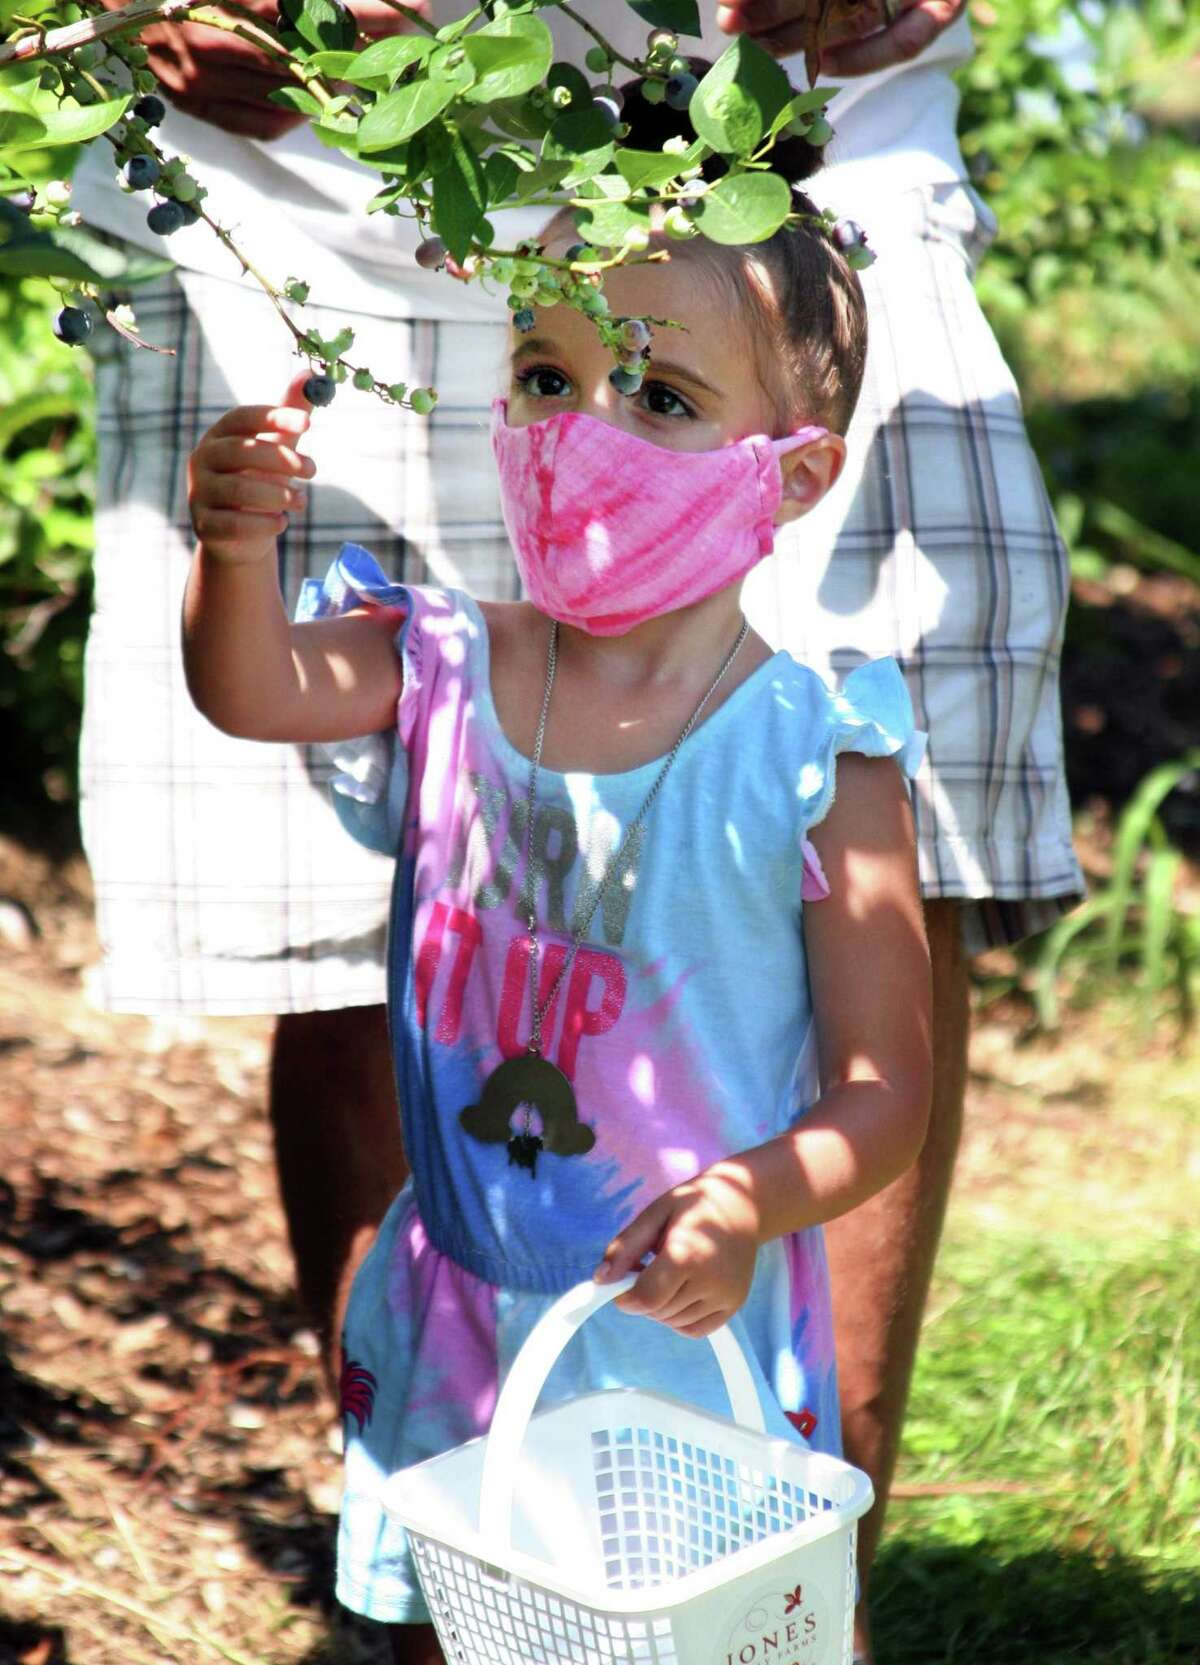 Rowan Ruggiero, 3, of Beacon Falls, picks blueberries at Jones Family Farm in Shelton, Conn., on Saturday July 18, 2020. For daily specific updates on days and hours of operation, call the Farmer Jones Crop Line at 203-929-8425.